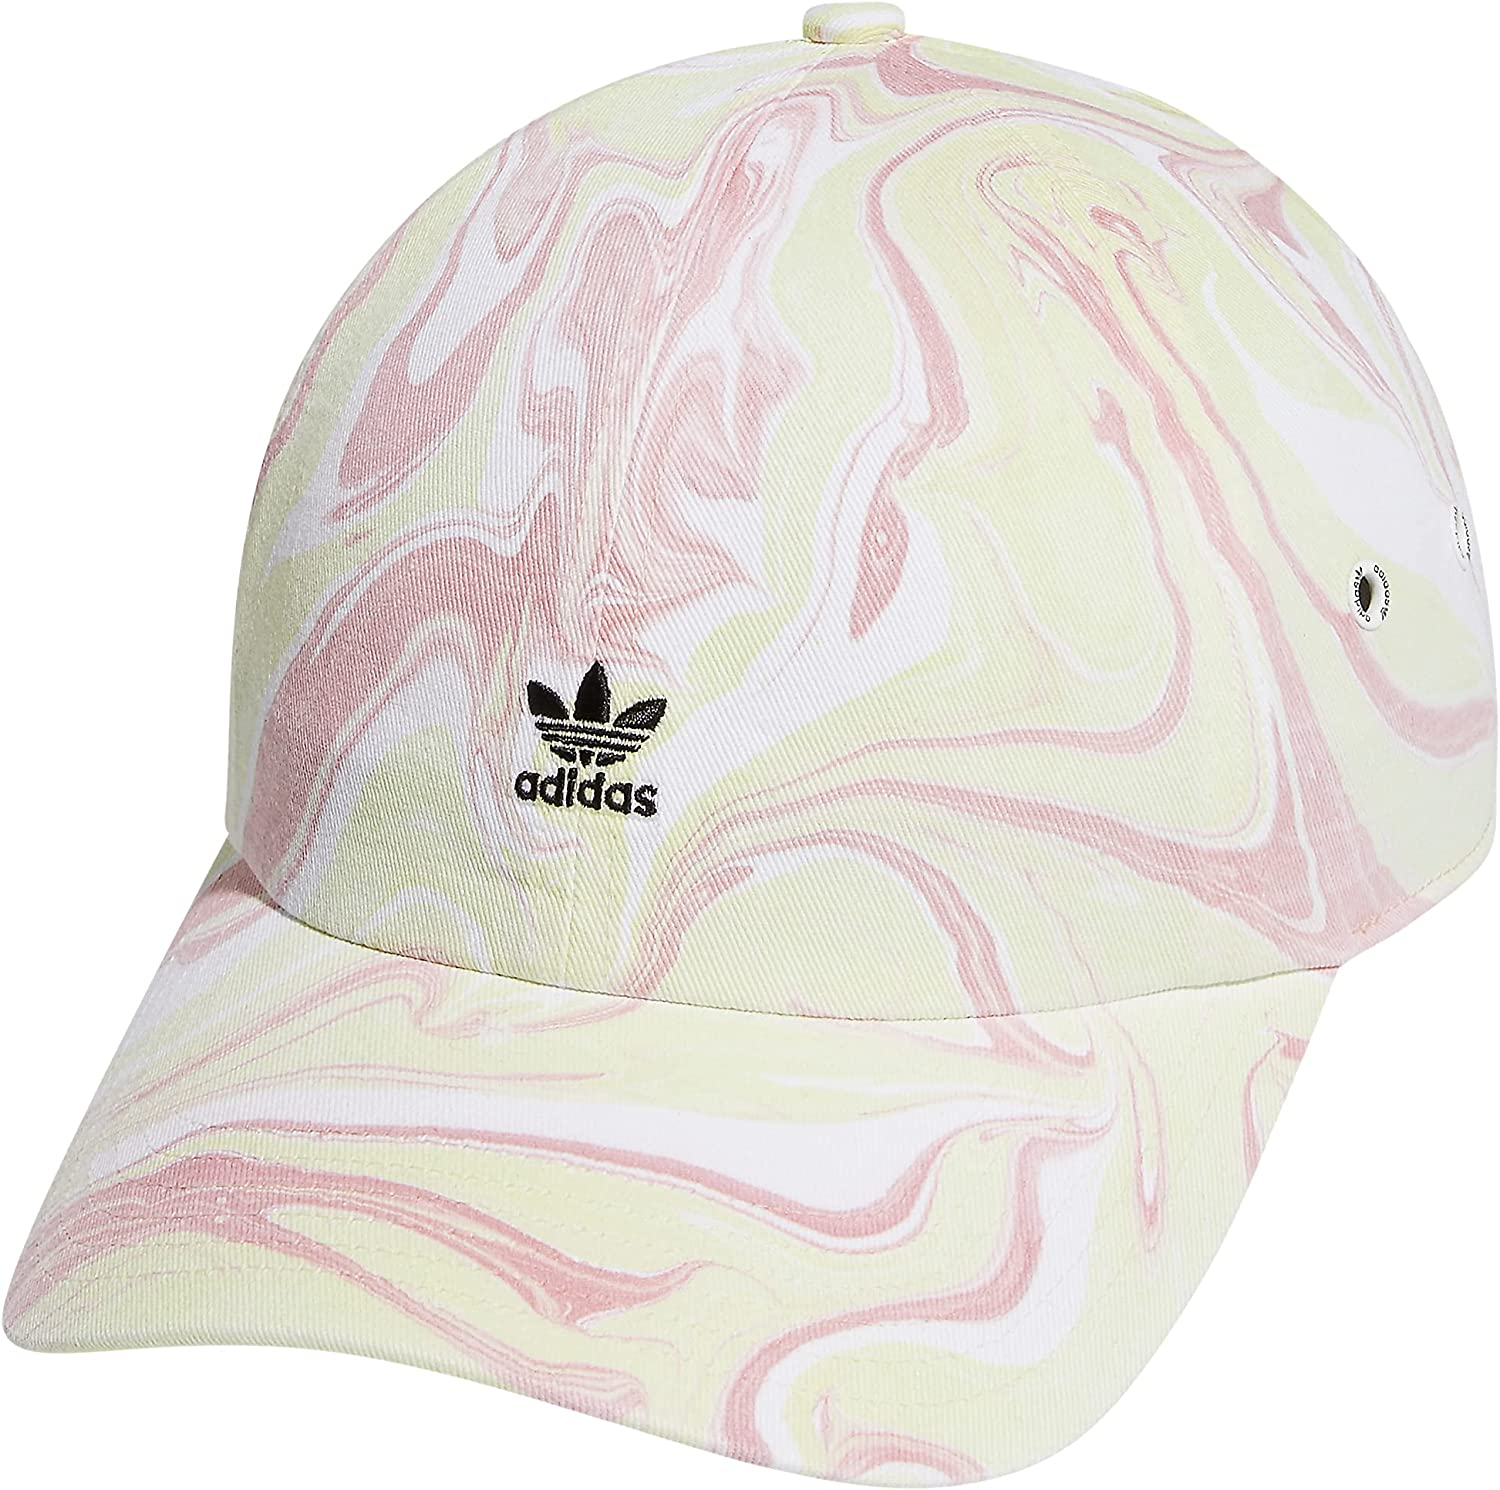 adidas Originals Women's Mini Logo Relaxed Adjustable Cap, Almost Lime Green/Wonder Mauve Pink, One Size : Clothing, Shoes & Jewelry